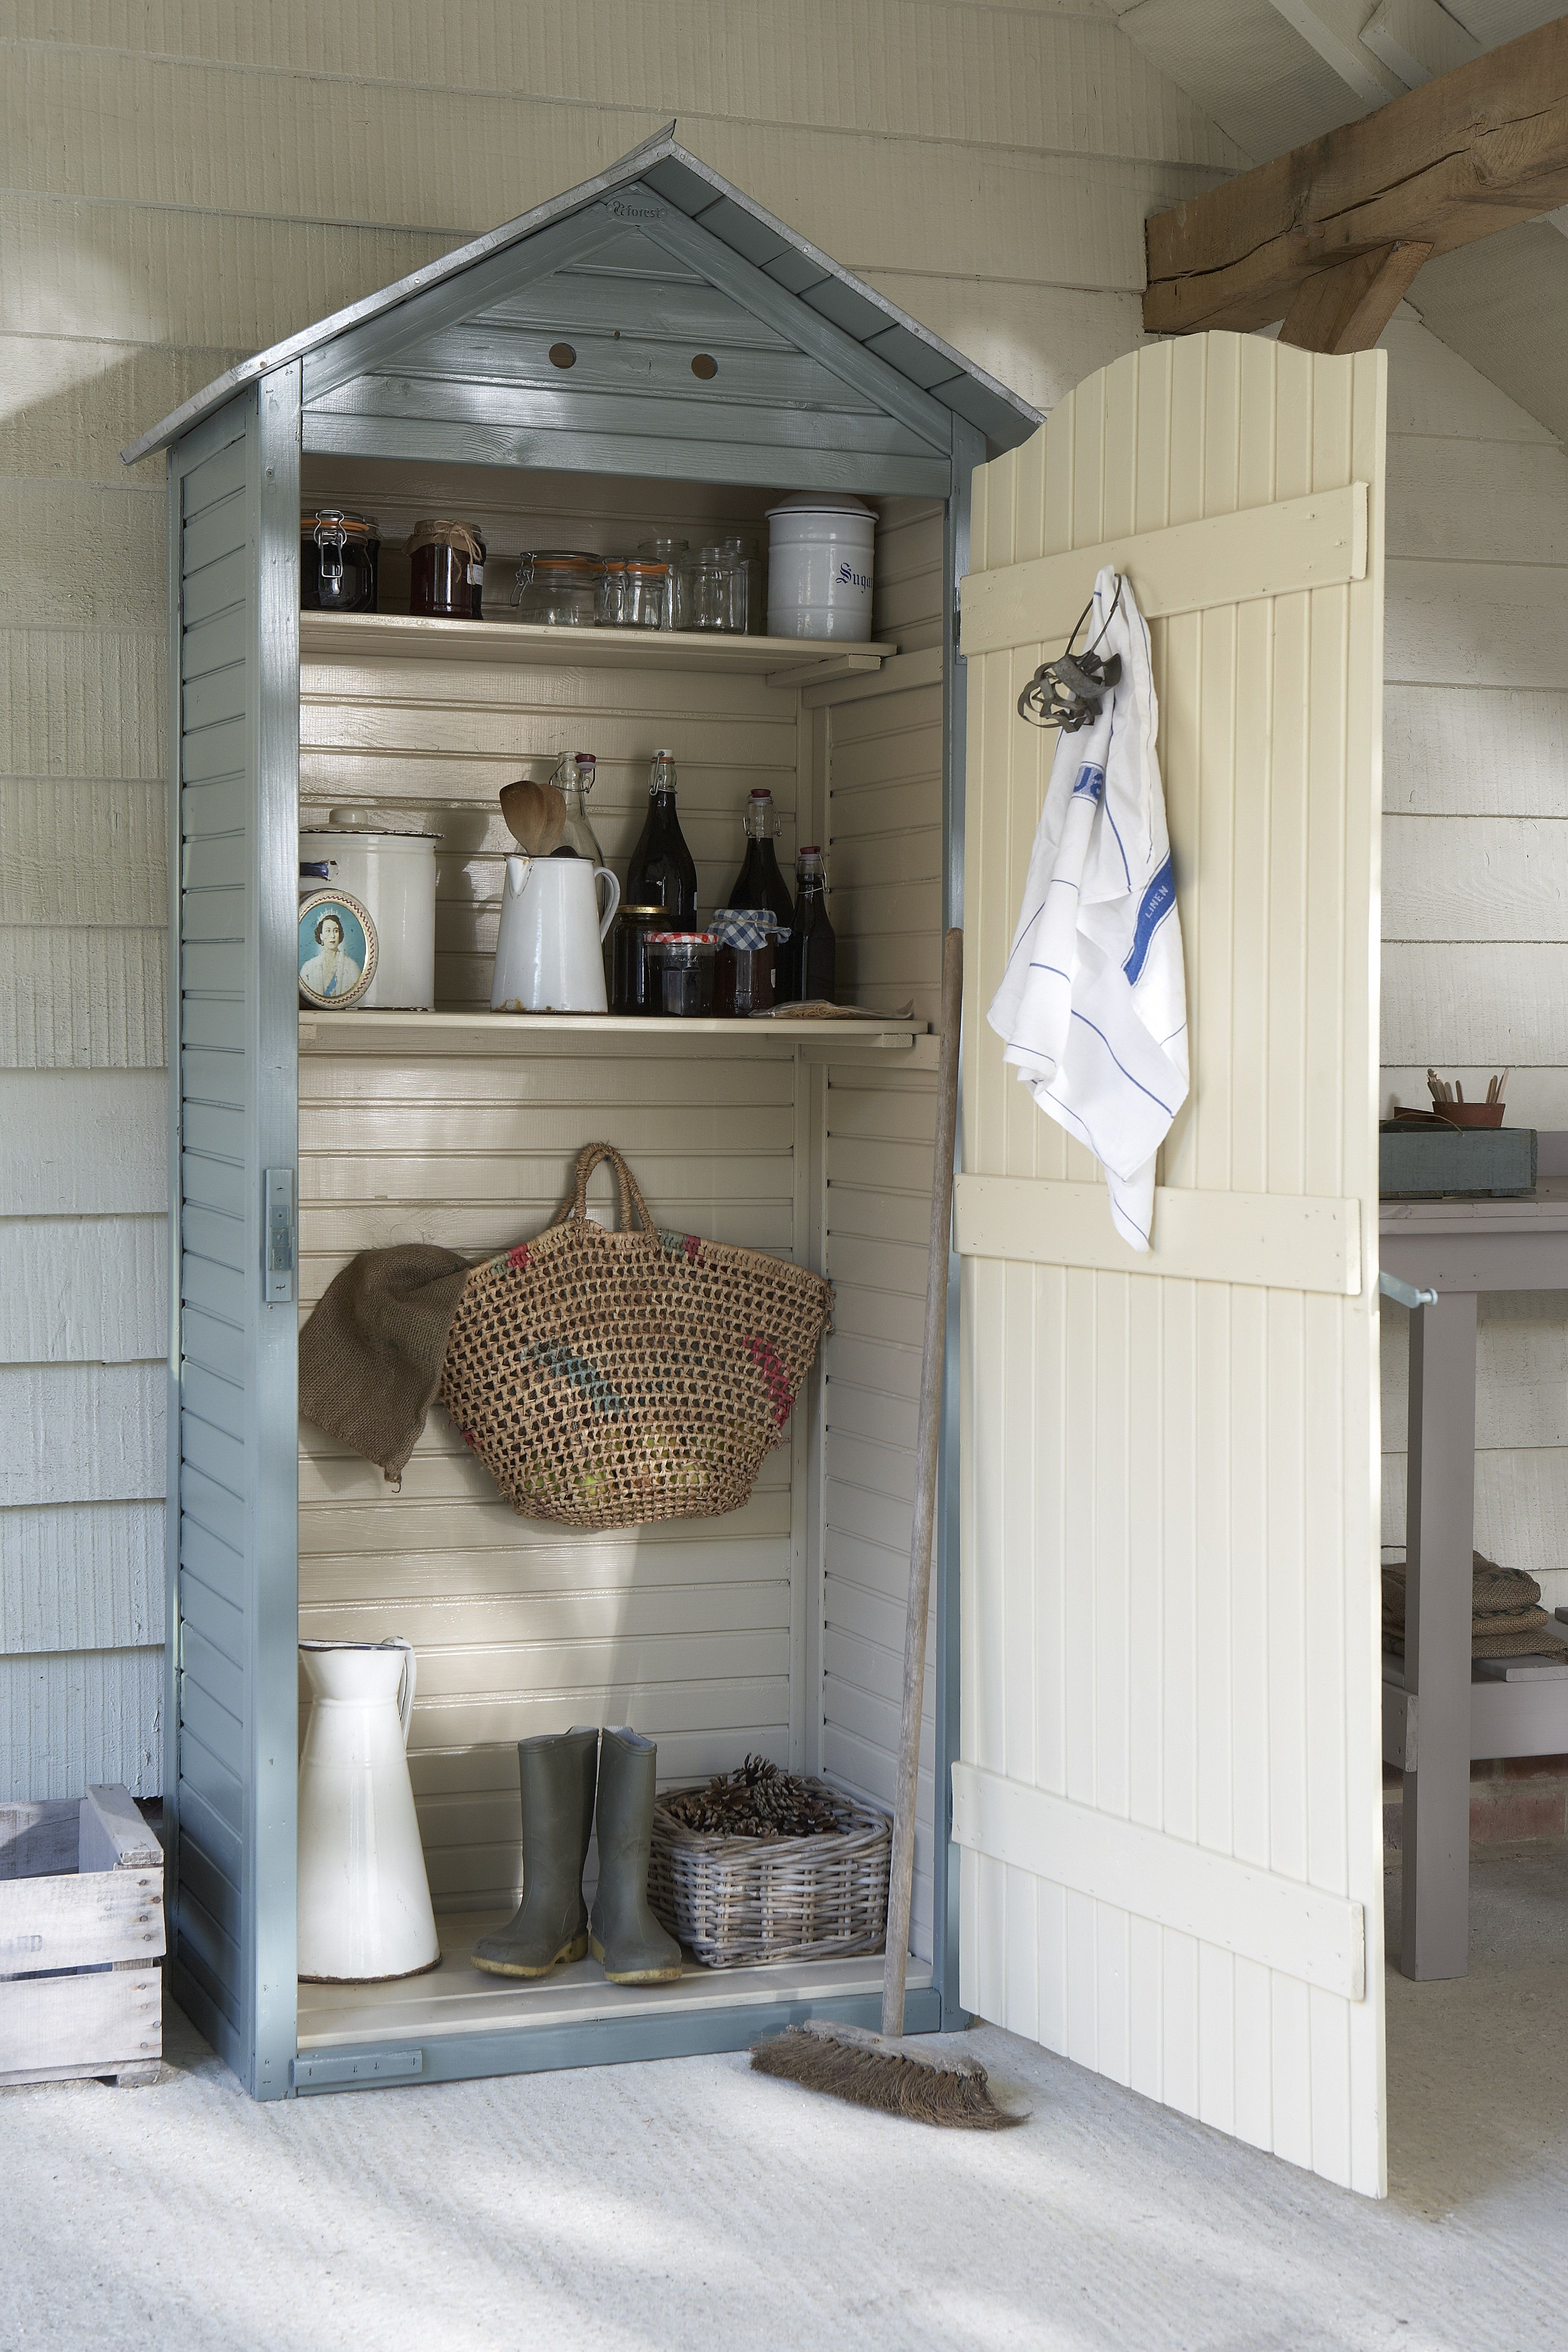 Cool idea on how to paint a shed or fence home design garden - Make Your Potting Shed Pretty With Cuprinol Garden Shades In Wild Thyme And Country Cream